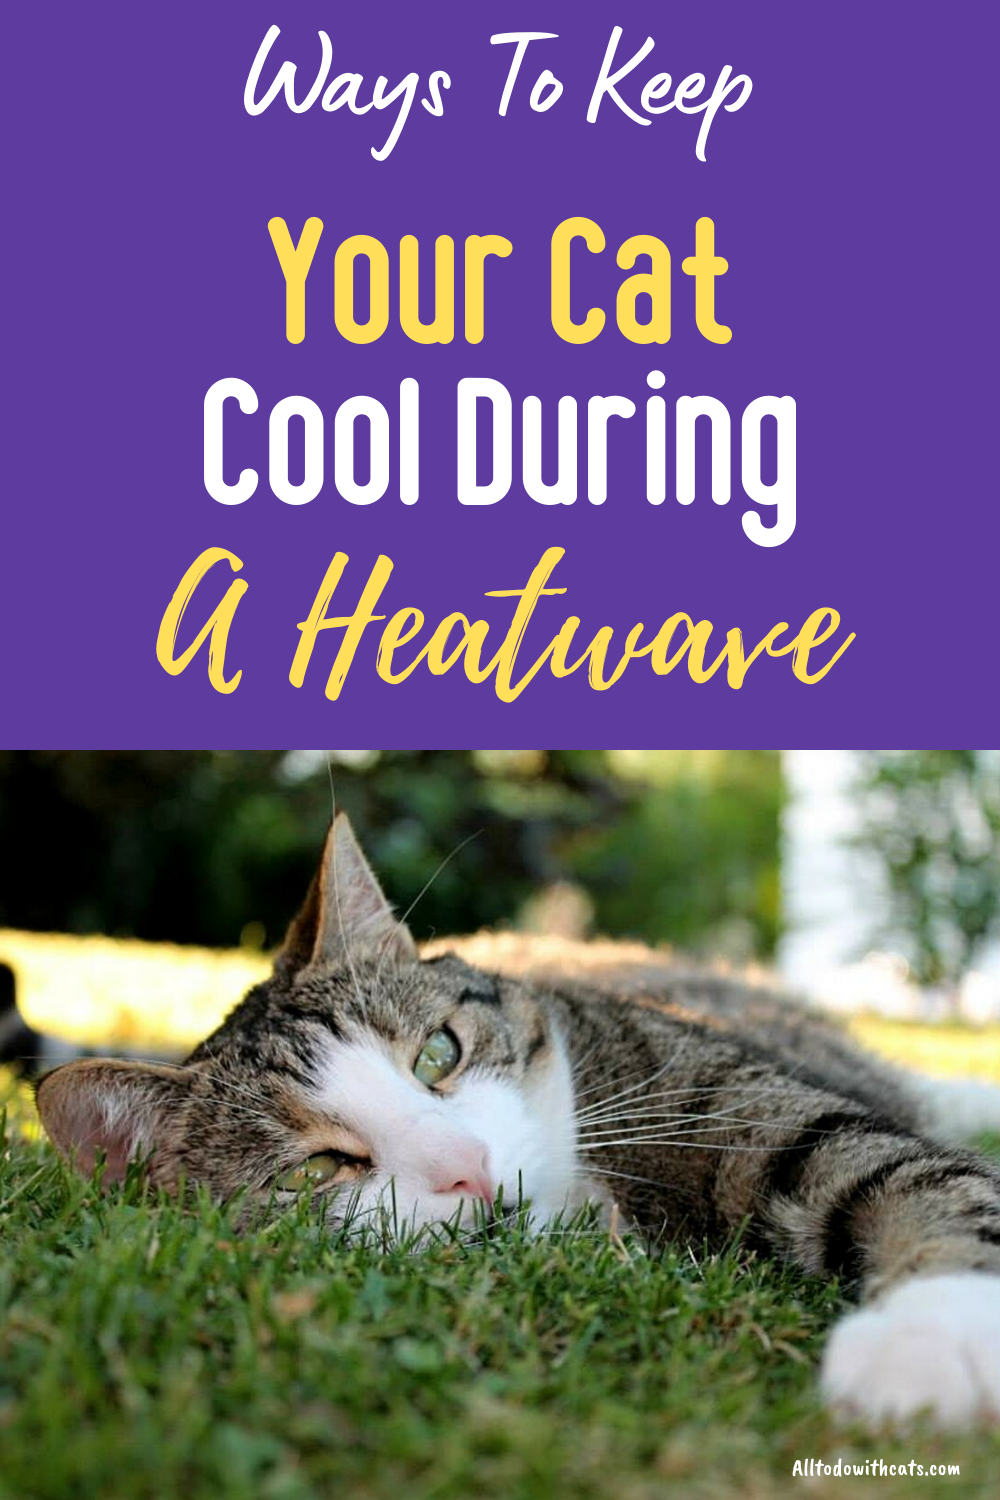 How To Keep Cats Cool In Hot Weather Even On The Hottest Day In 2020 Cat Cold Cat Care Tips Cats